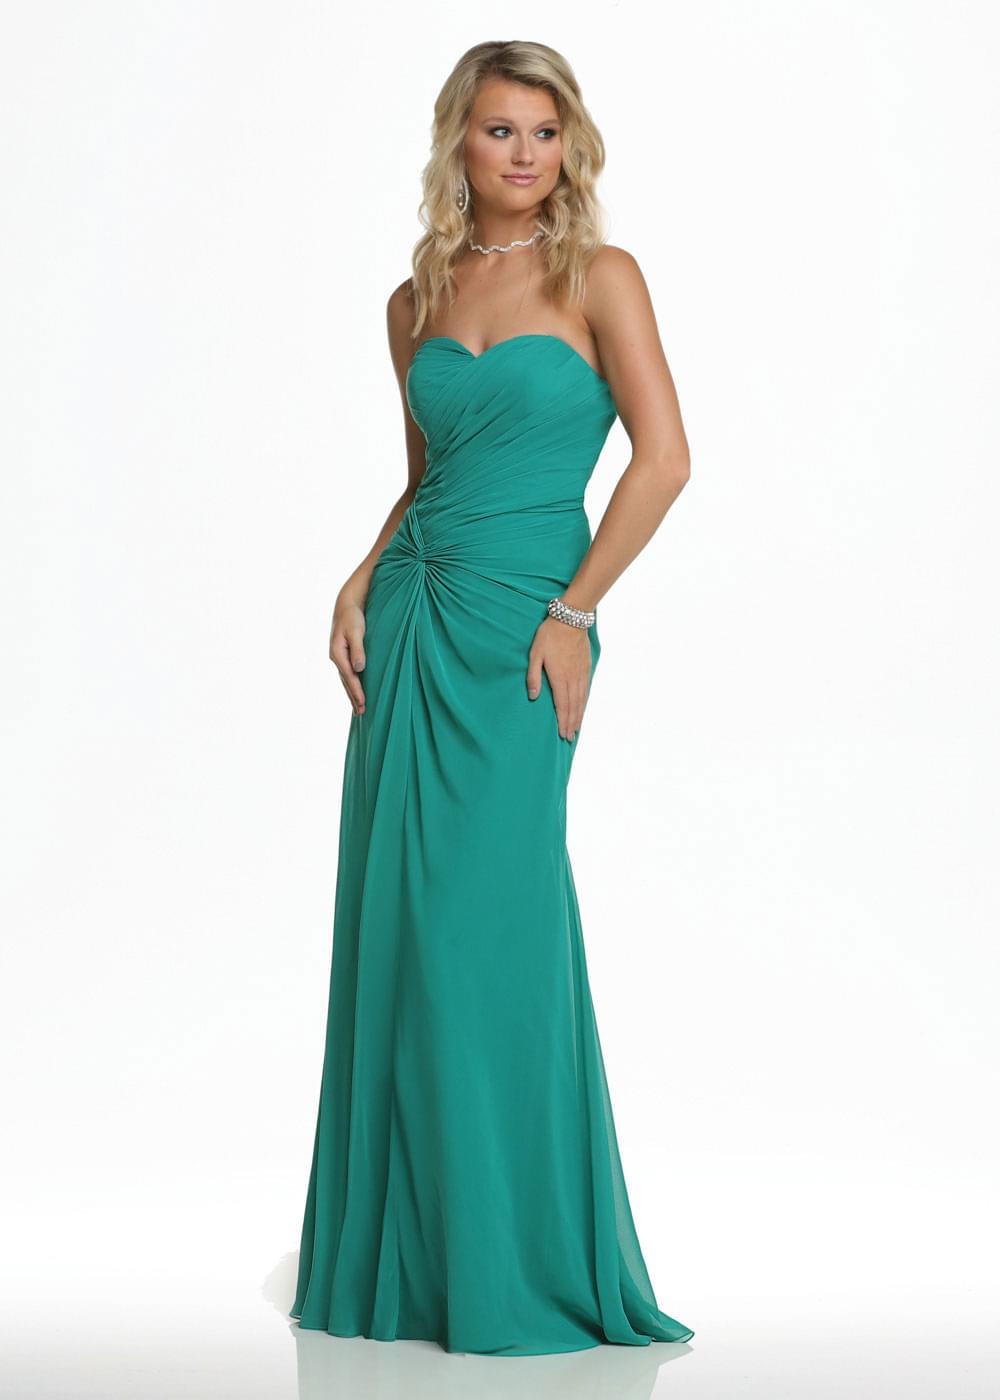 TH-80060 TH Bridesmaid Dresses By Ashdon